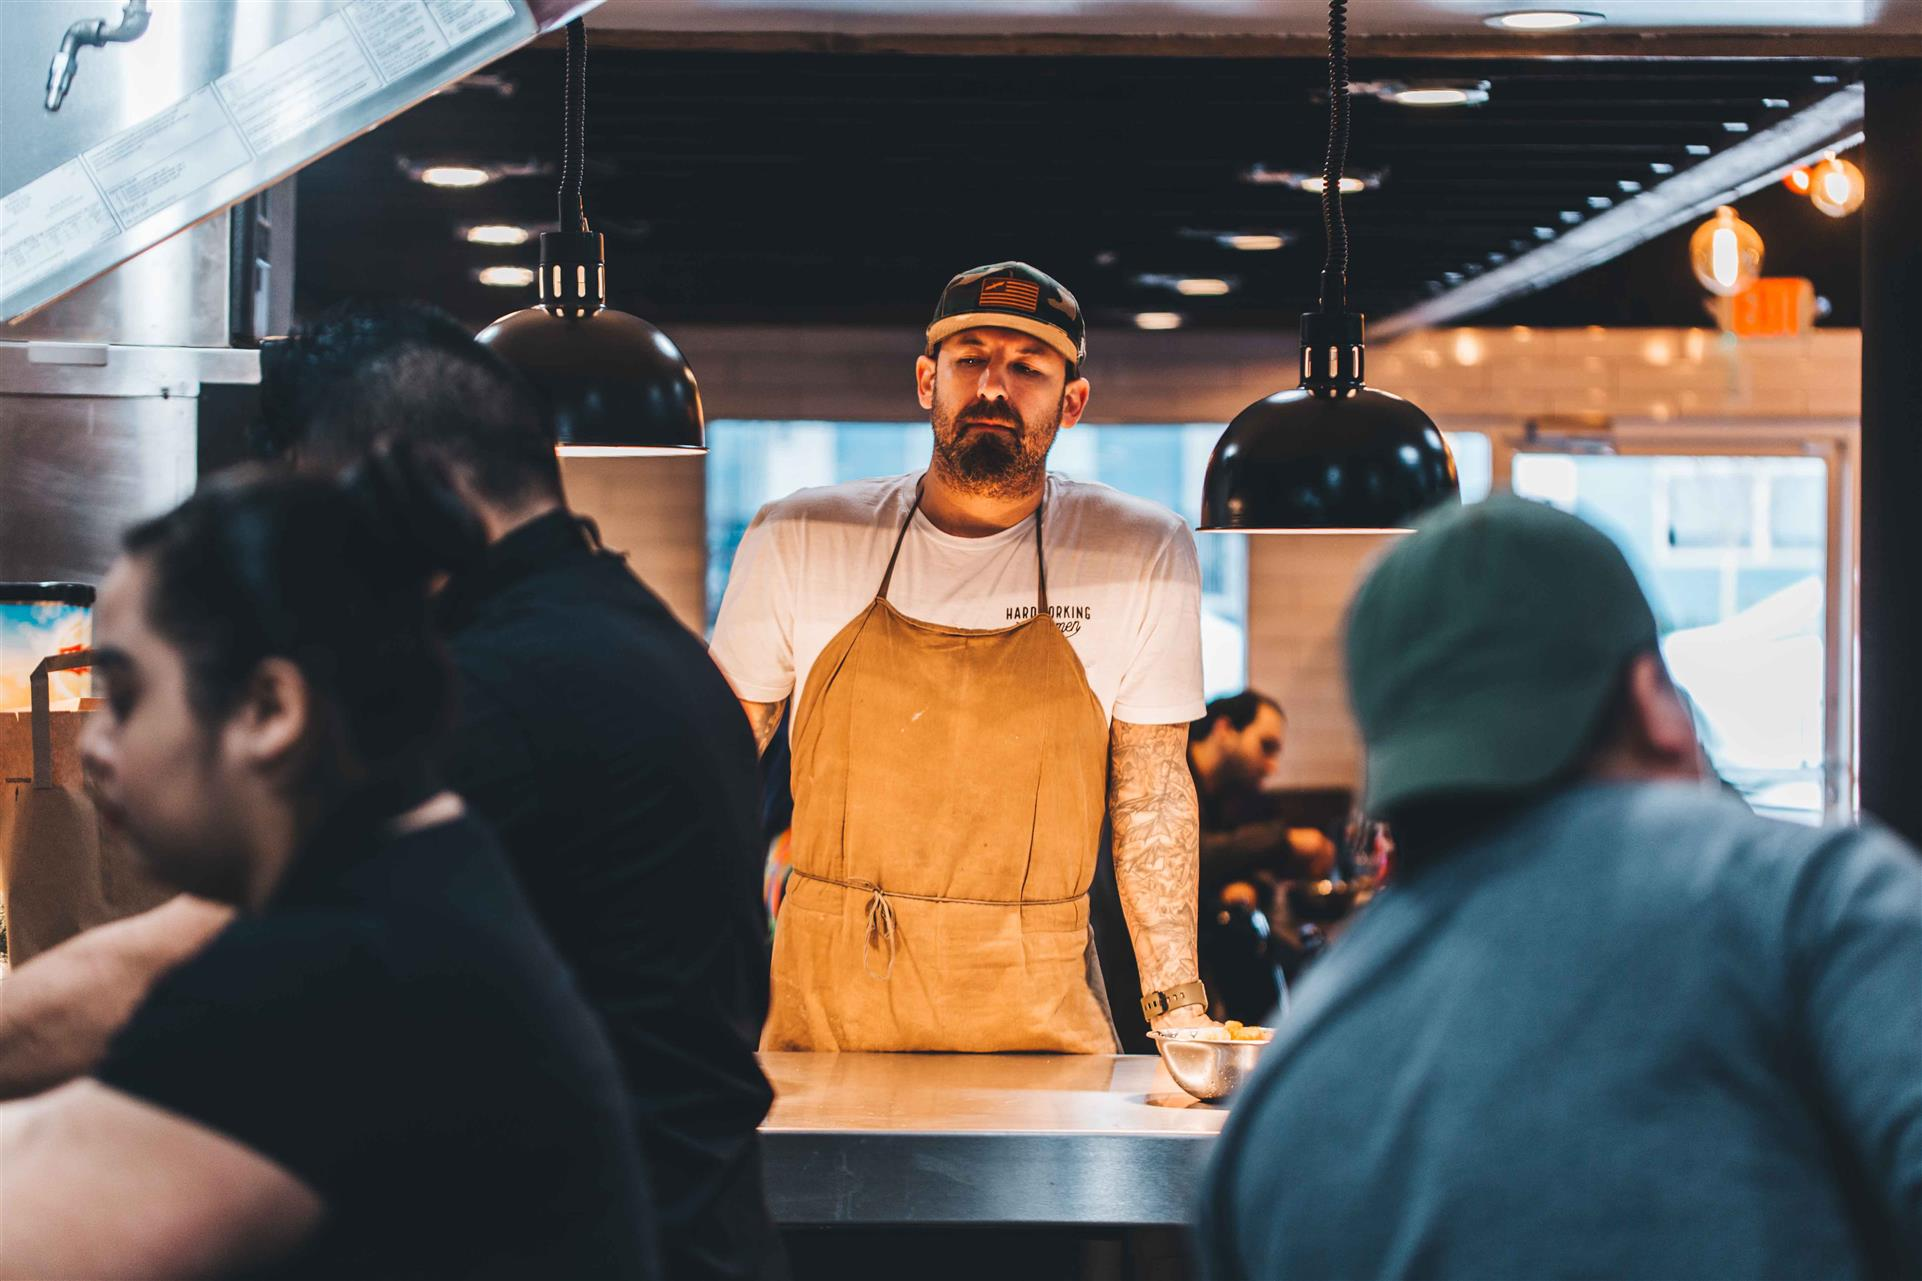 chef at the line waiting for orders to be placed